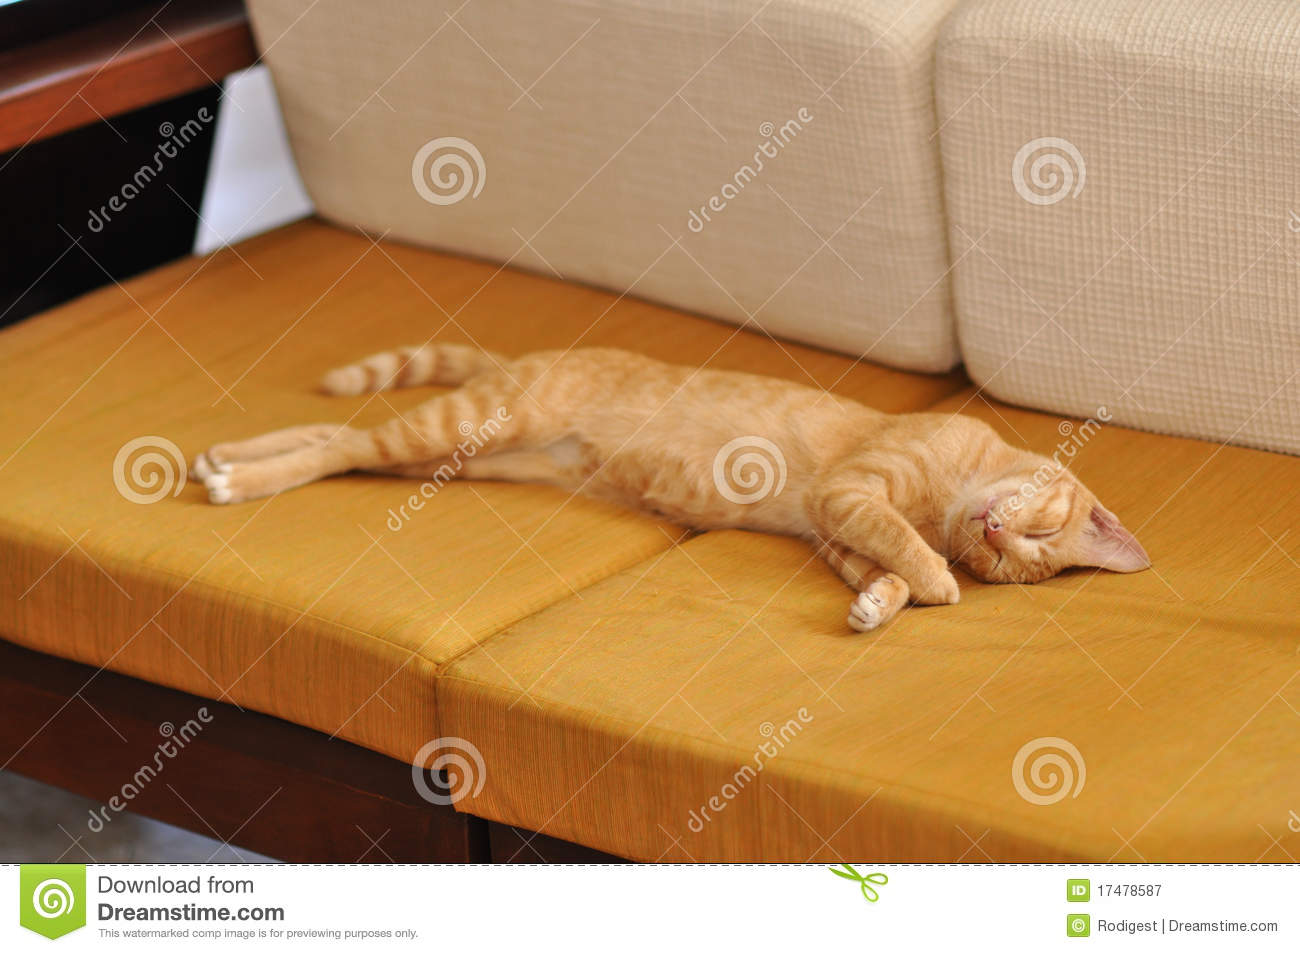 Lying On The Sofa Tiger Cat Sleep Sofa Stock Image. Image Of Couch, Fluffy